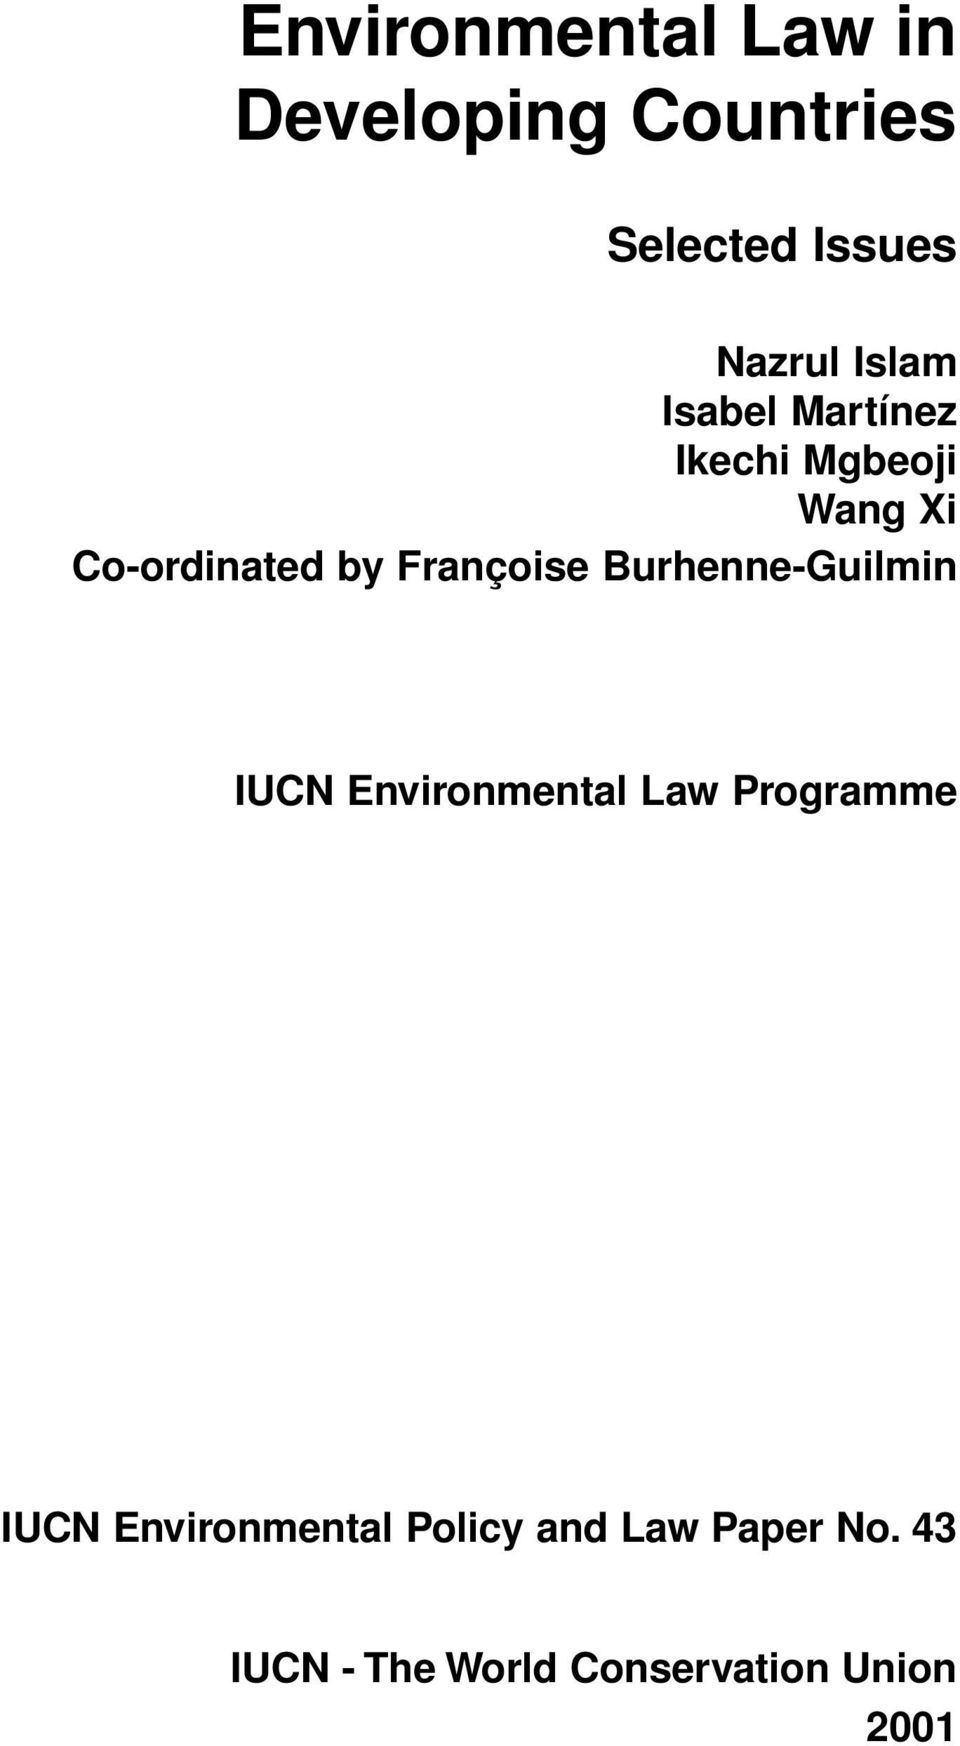 Françoise Burhenne-Guilmin IUCN Environmental Law Programme IUCN